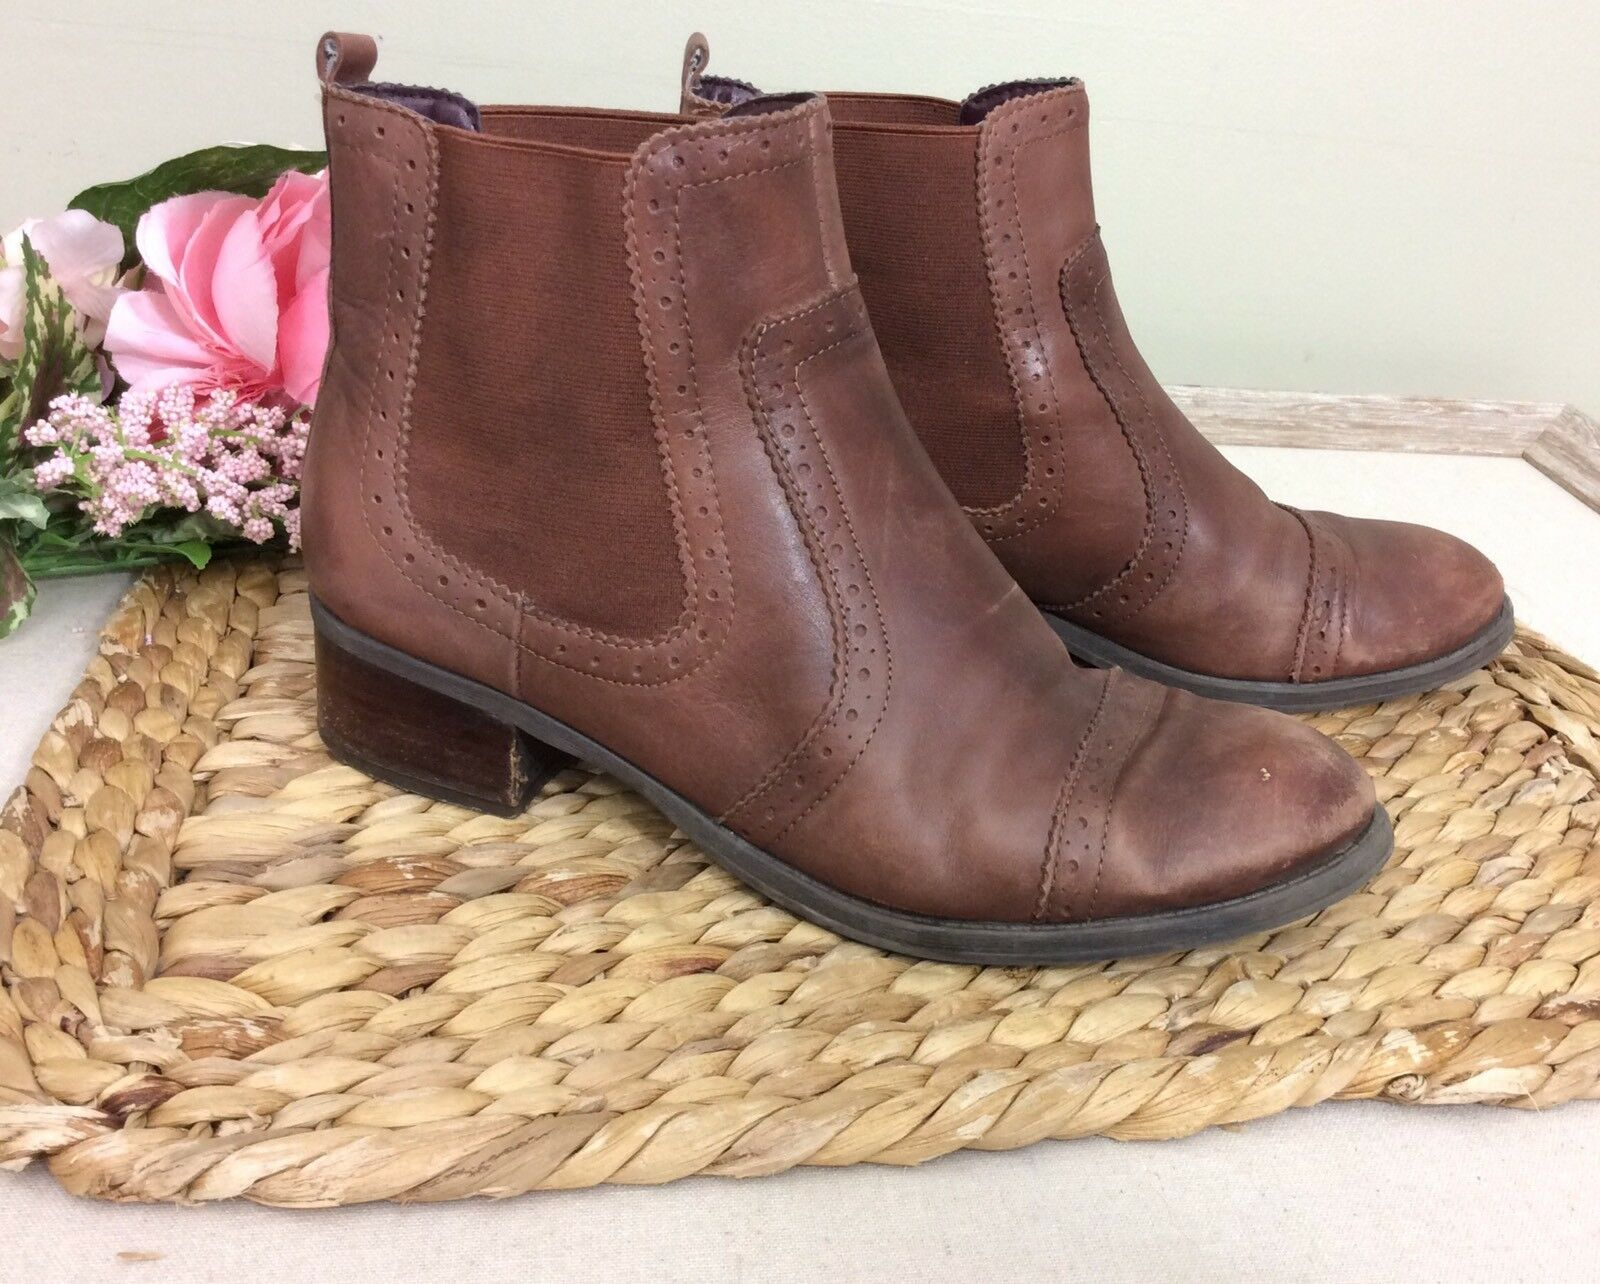 Womens Tommy Hilfiger Distressed Leather Ankle Boots sz 9.5 Brogue Detailing